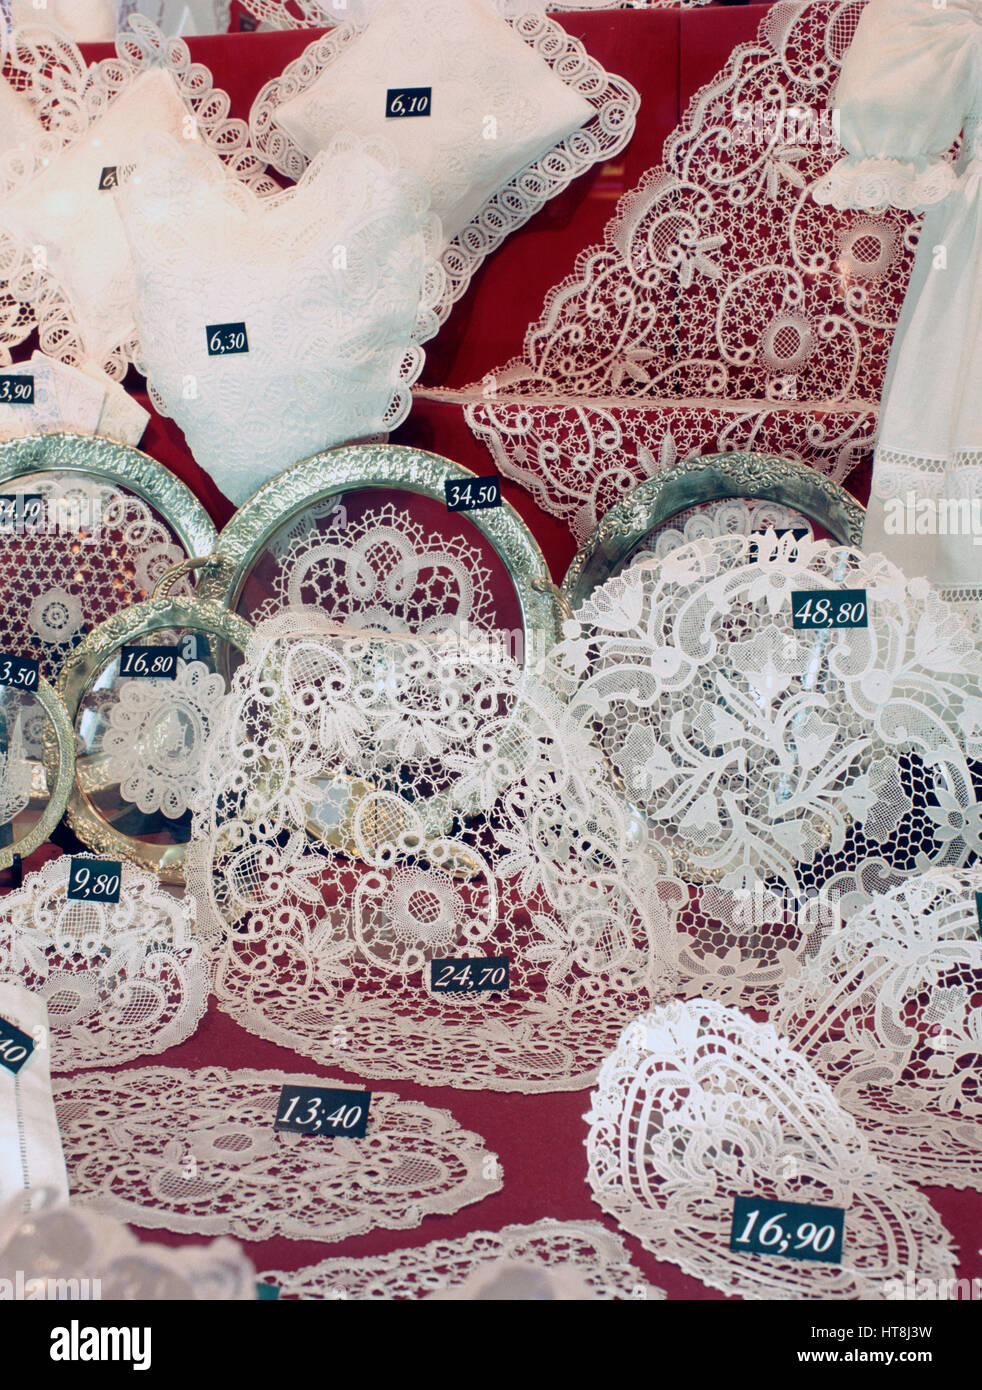 Lace products displayed for sale in a shop window, Bruges, Belgium. - Stock Image